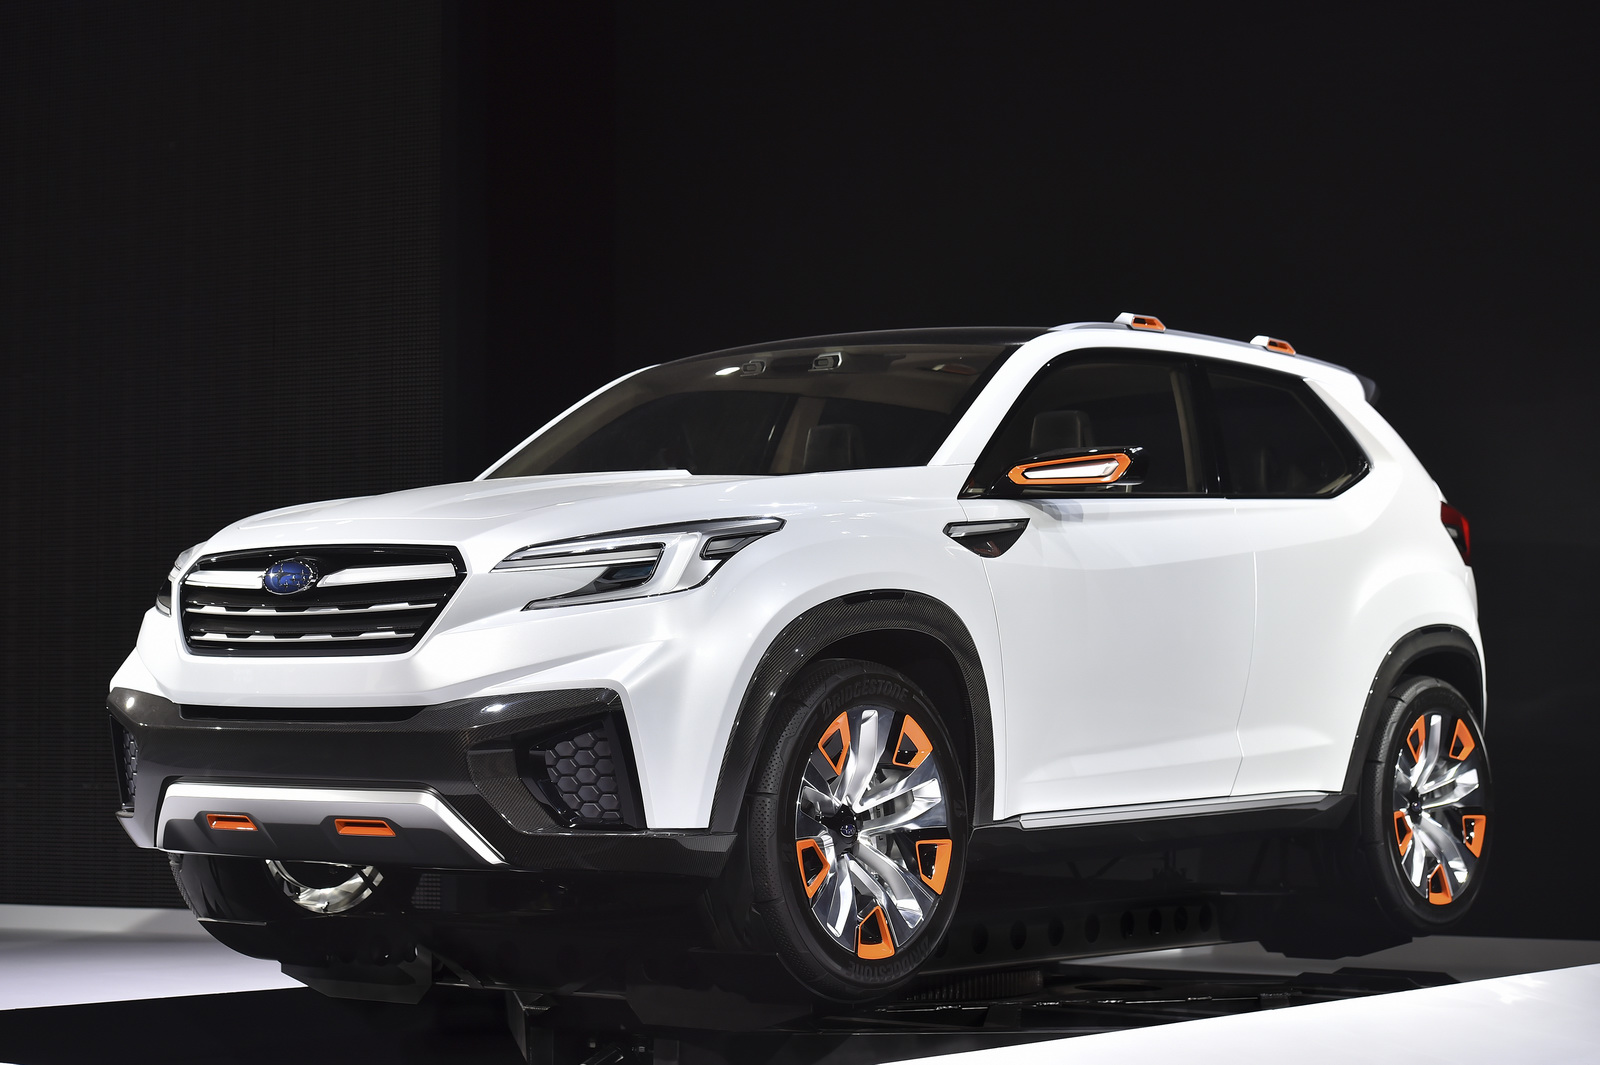 2019 Subaru Tribeca photo - 3